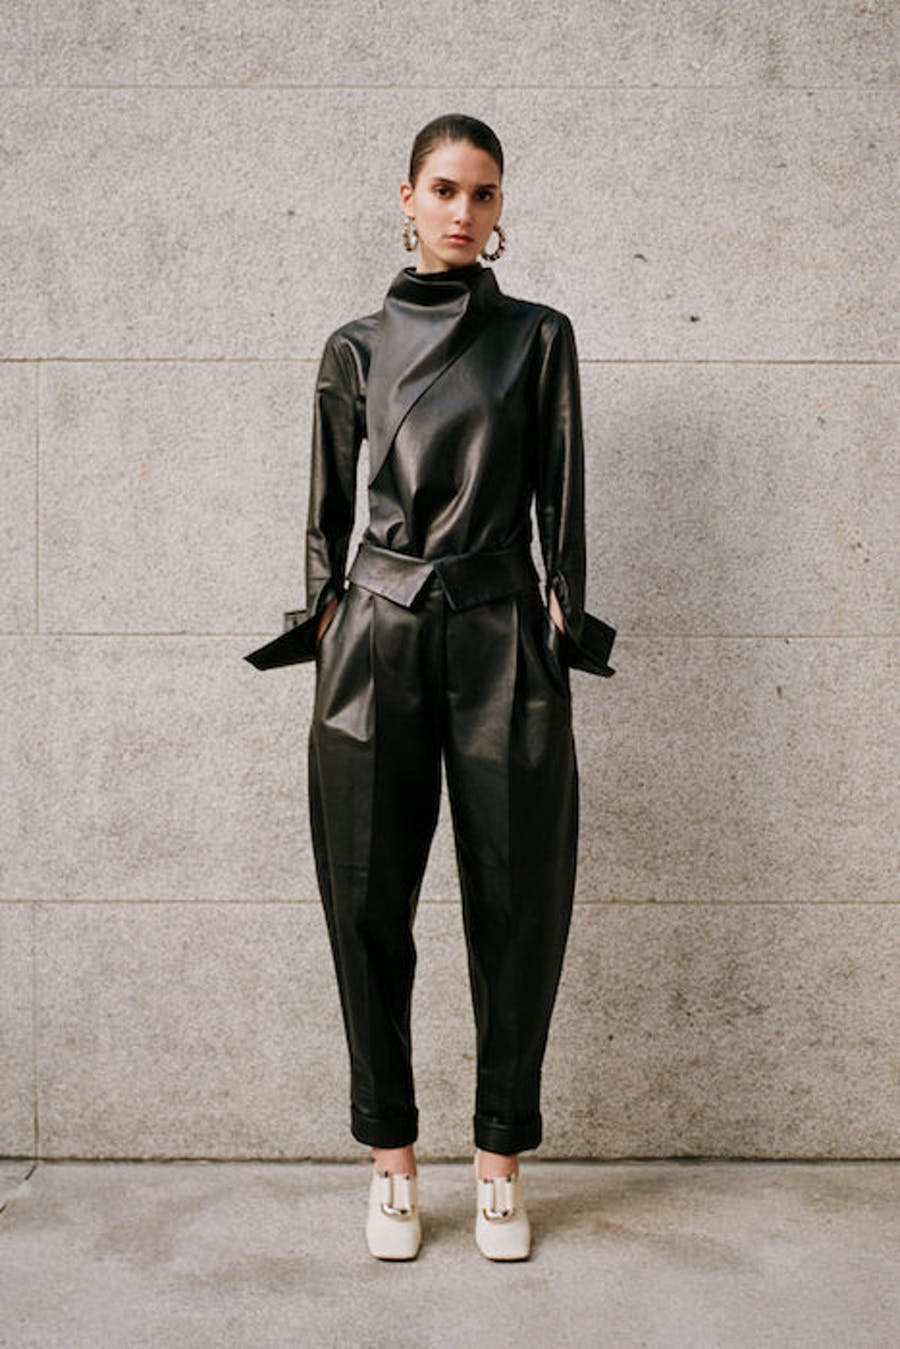 Proenza Schouler Leather High Neck Top in Black Leather Fold Over Loose Fit Trousers in Black Leather Pre Fall 20